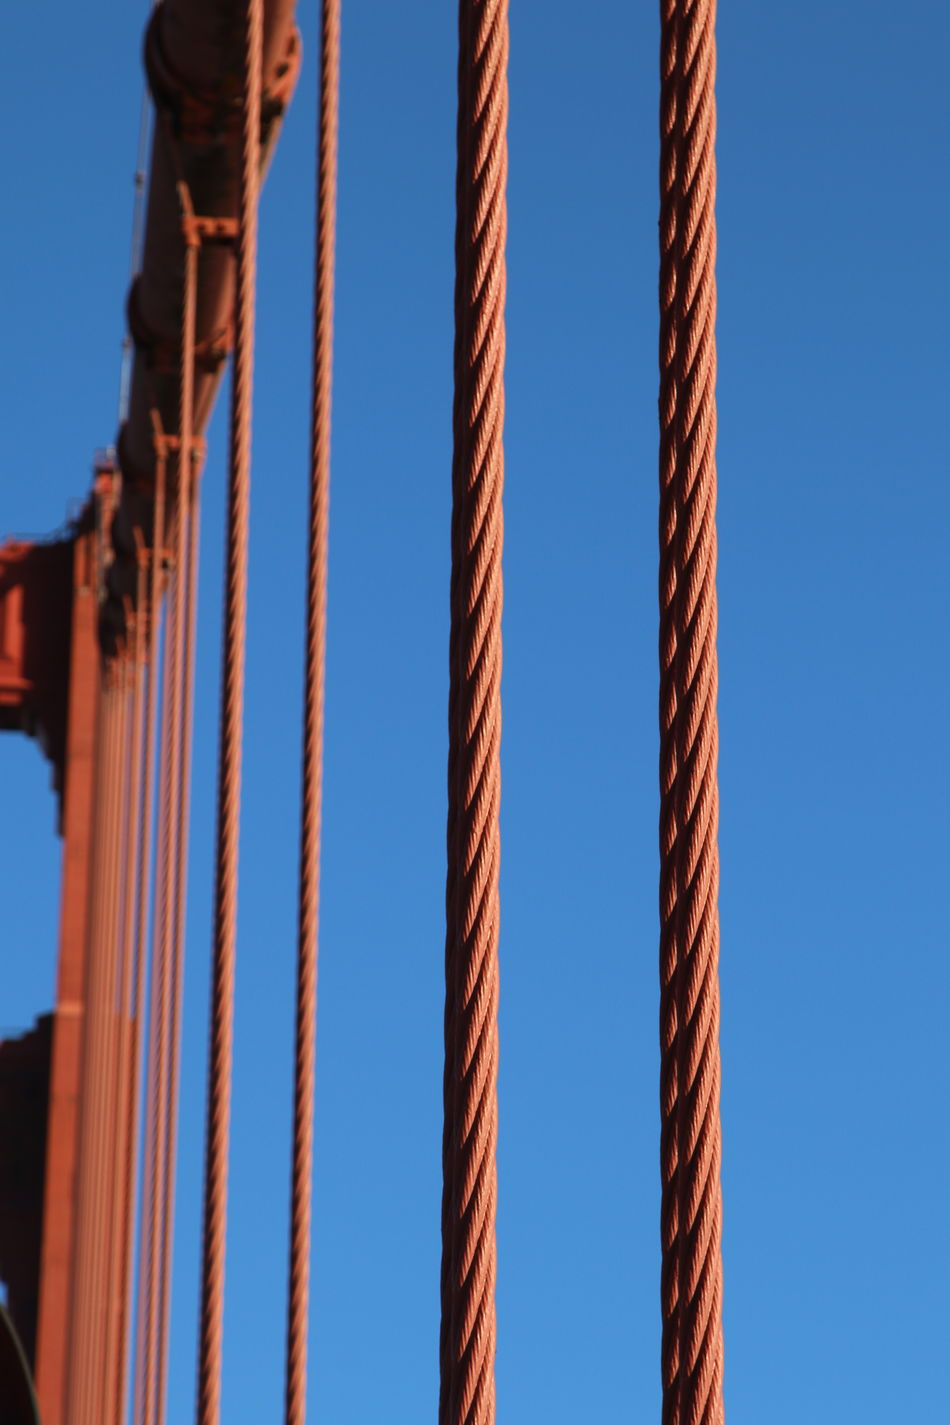 Bridge Close-up Construction Golden Gate Bridge Outdoors Sky Stability Steel Cables Steel Strings Steel Wires